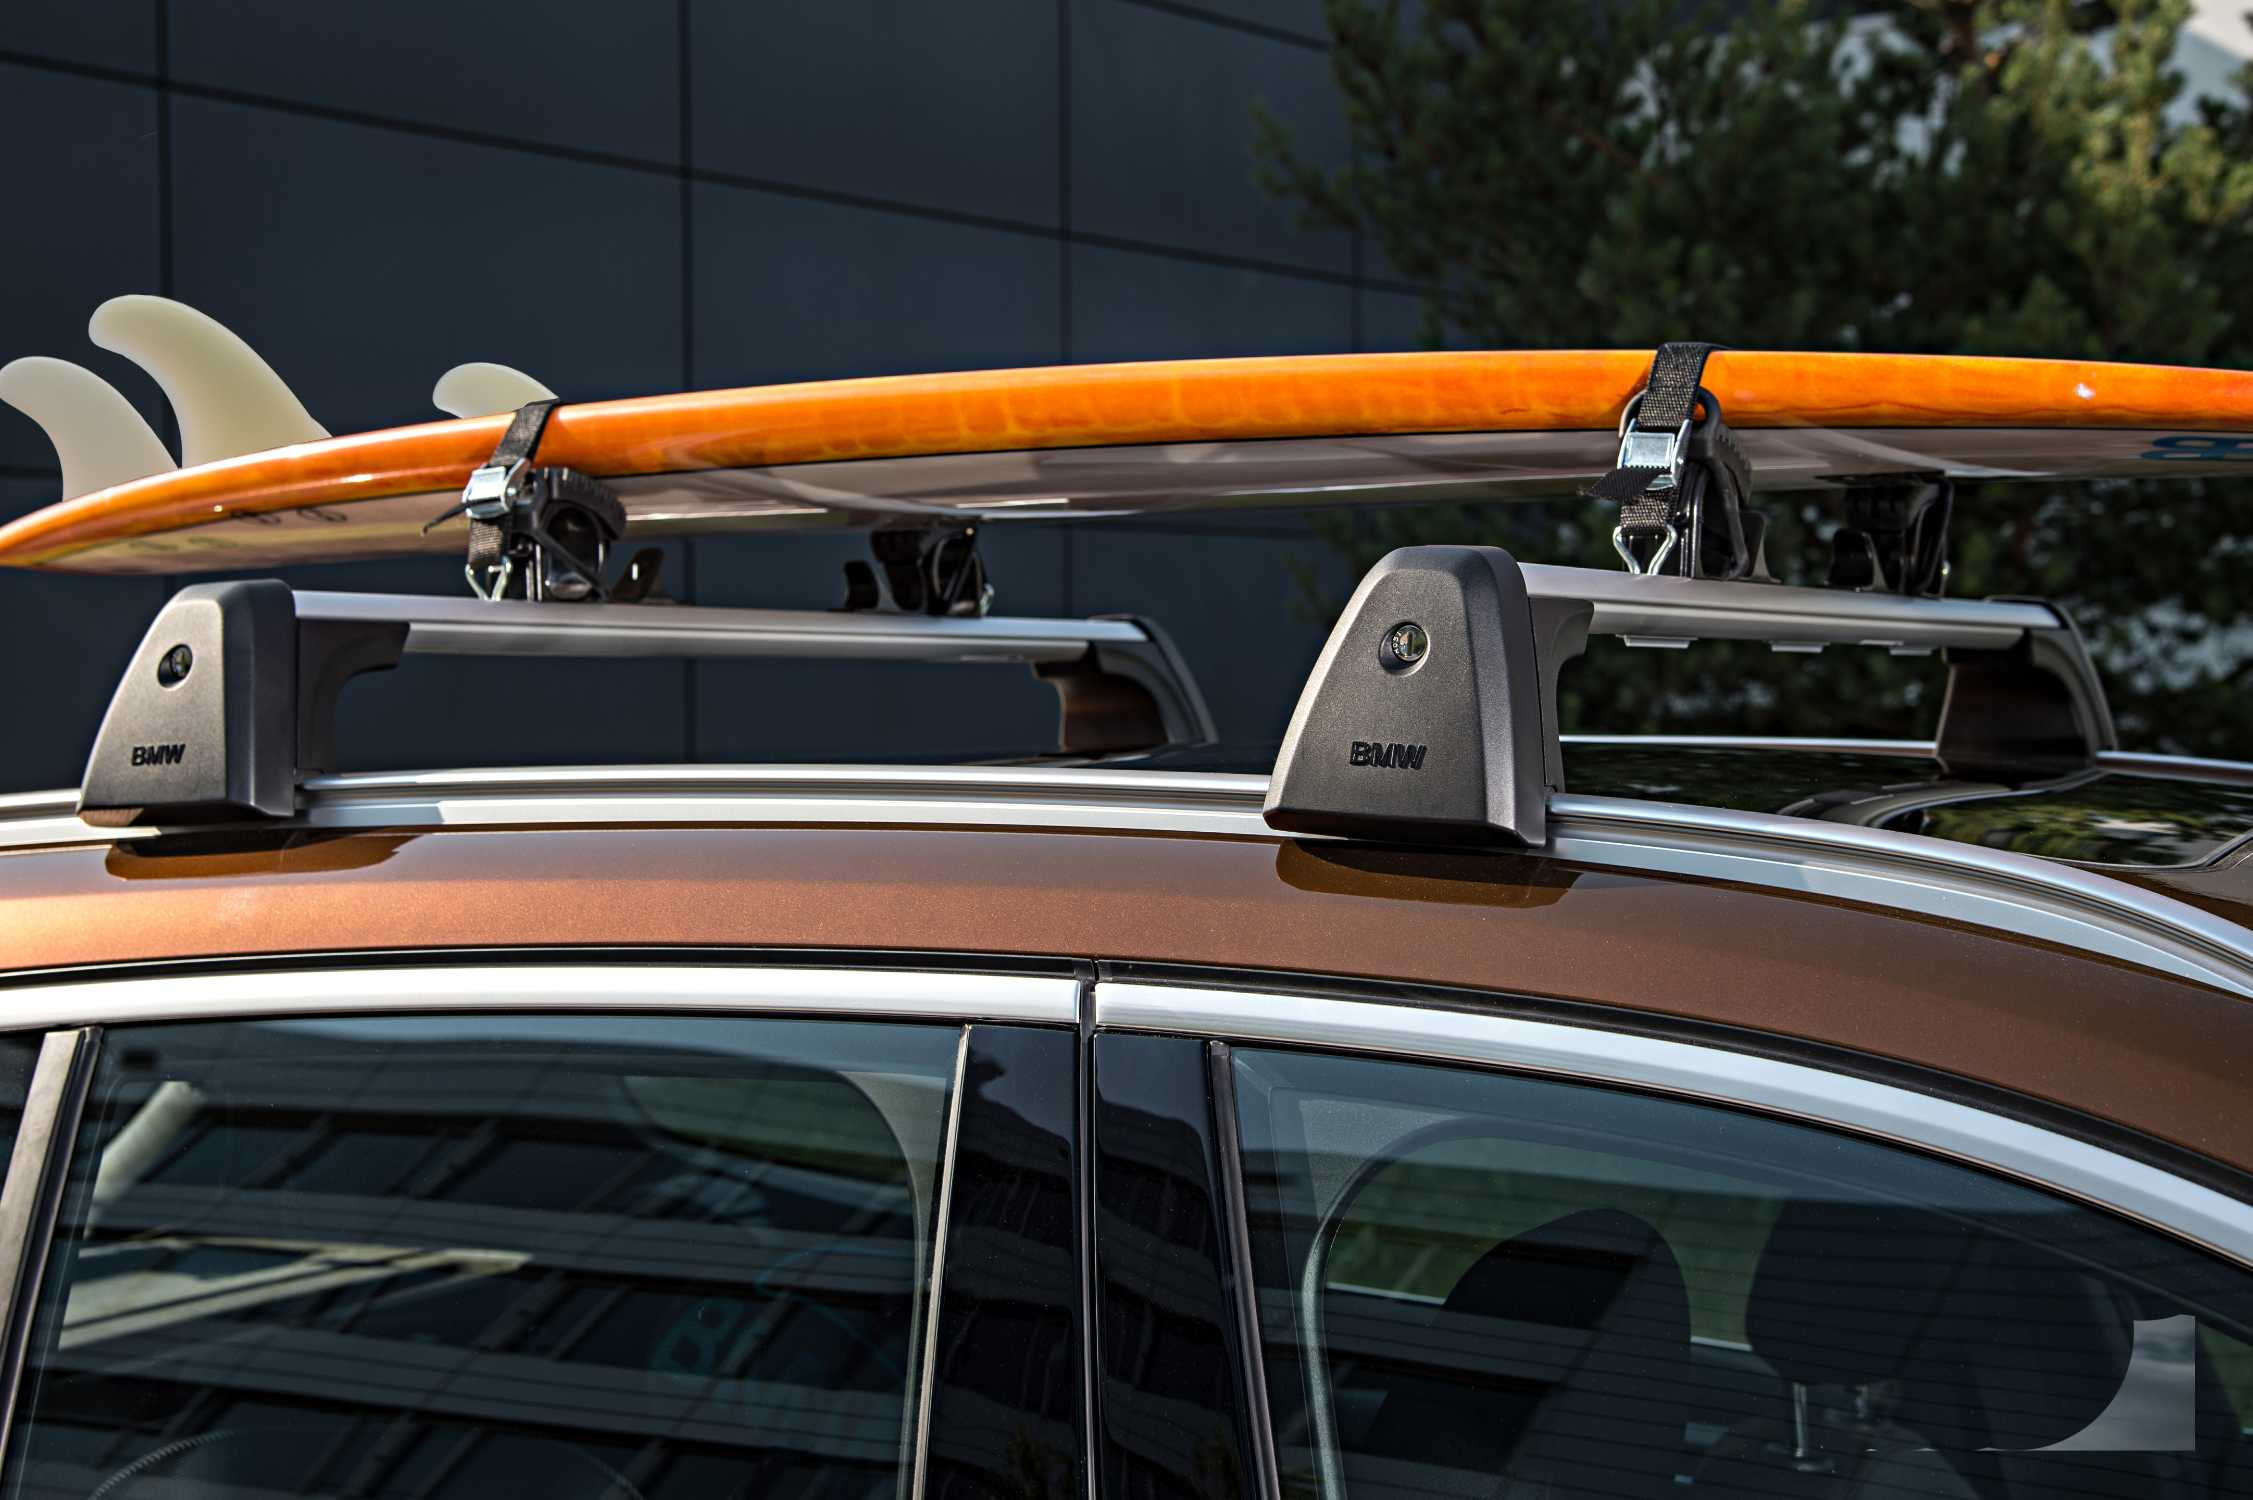 The New Bmw X1 On Location Pictures Base Support System Surfboard